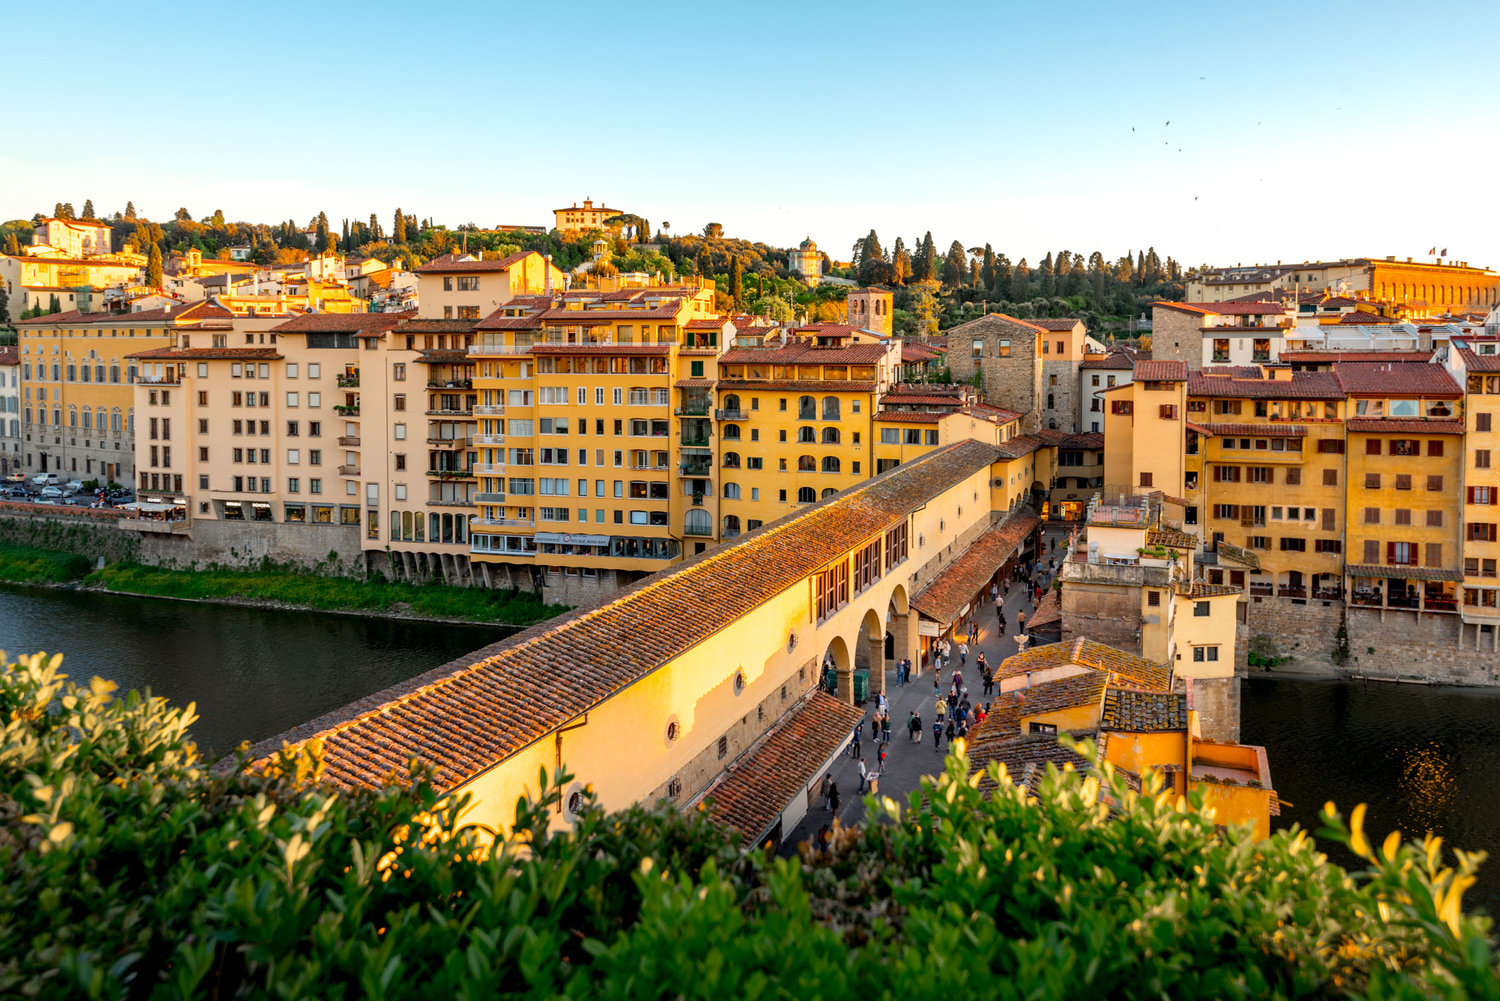 Continentale A Boutique Hotel Overlooking The Arno River In